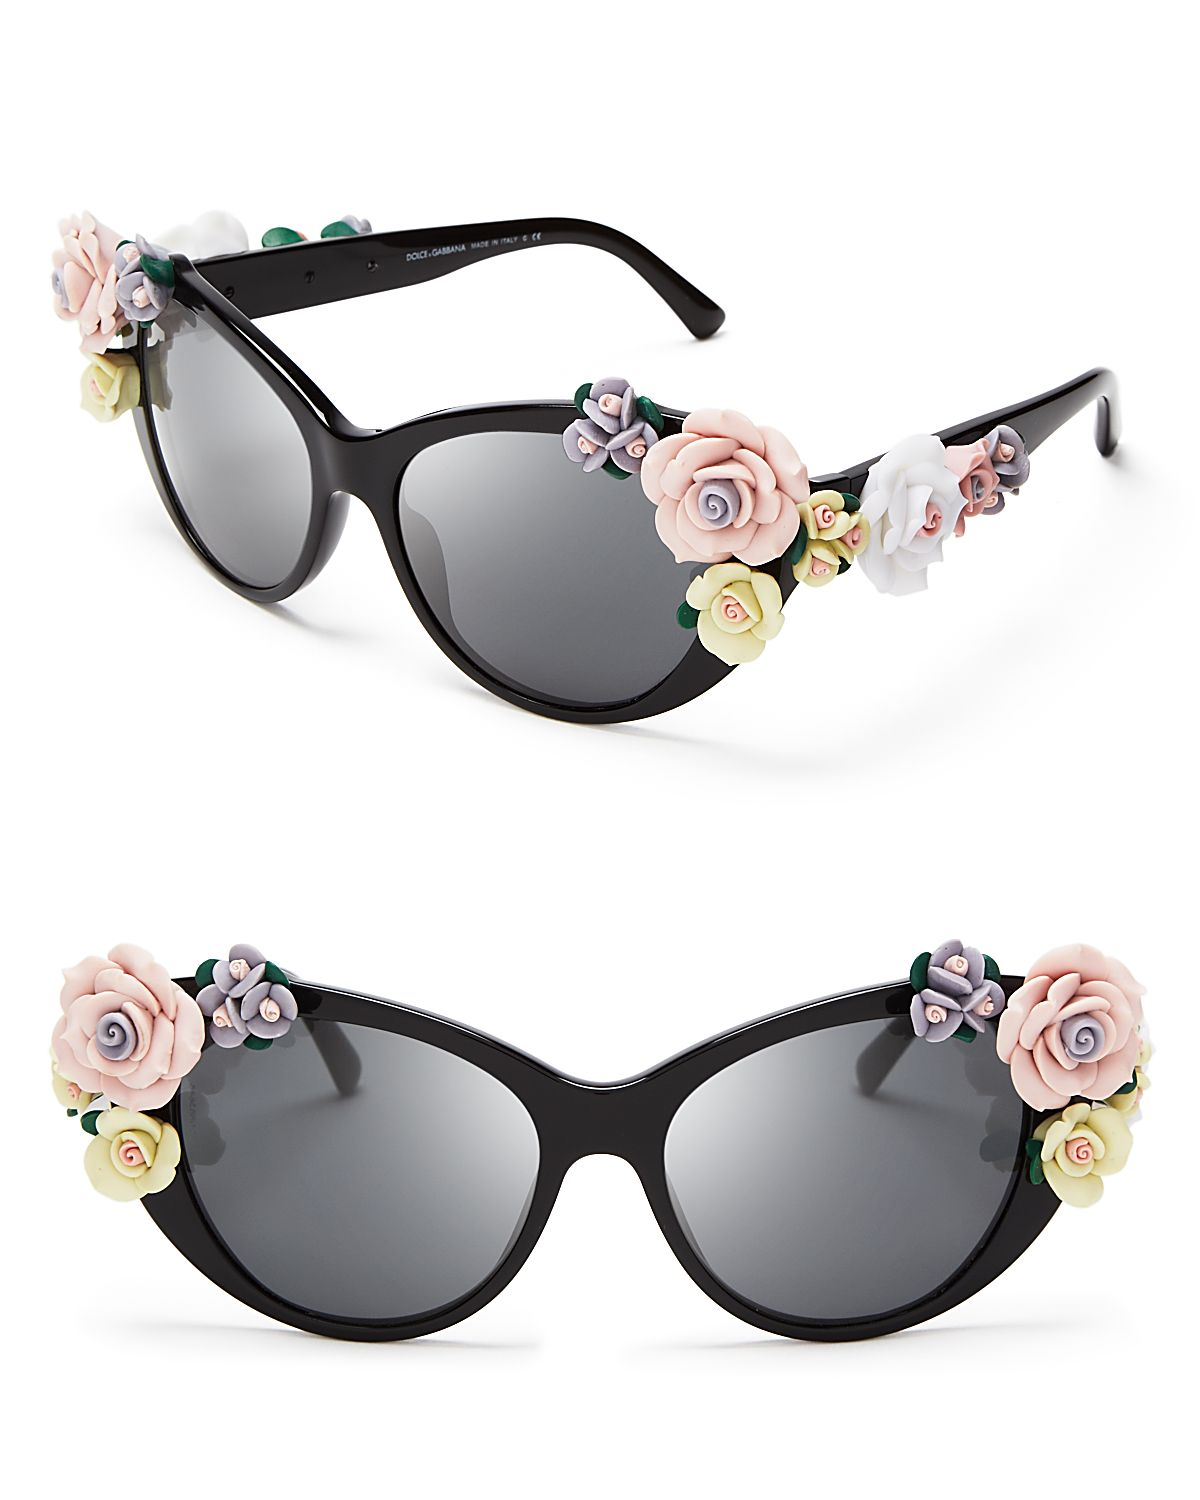 lyst dolce gabbana oversized floral cat eye sunglasses. Black Bedroom Furniture Sets. Home Design Ideas